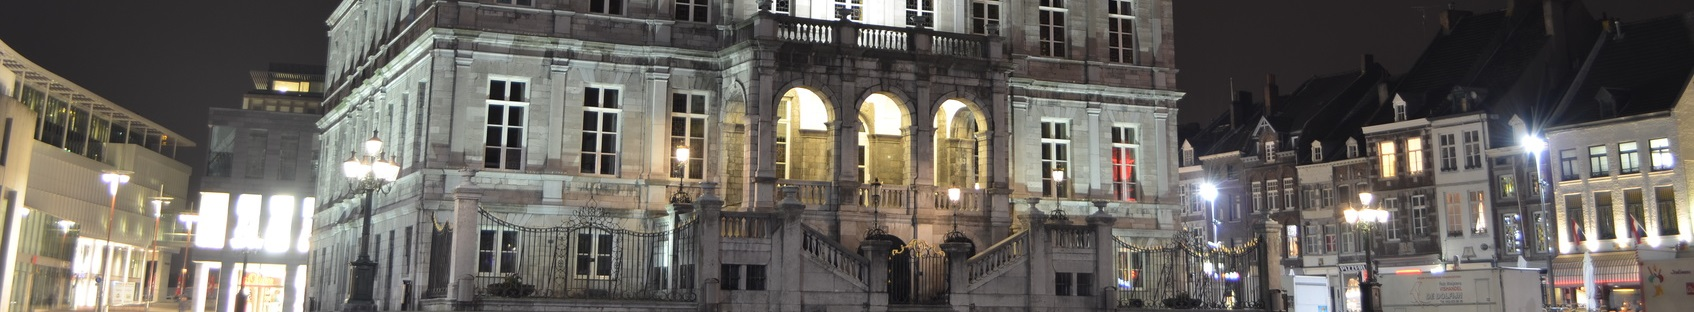 MAASTRICHT, NETHERLANDS, APRIL 12, 2014: Night view over town hall in historical center of Maastricht.